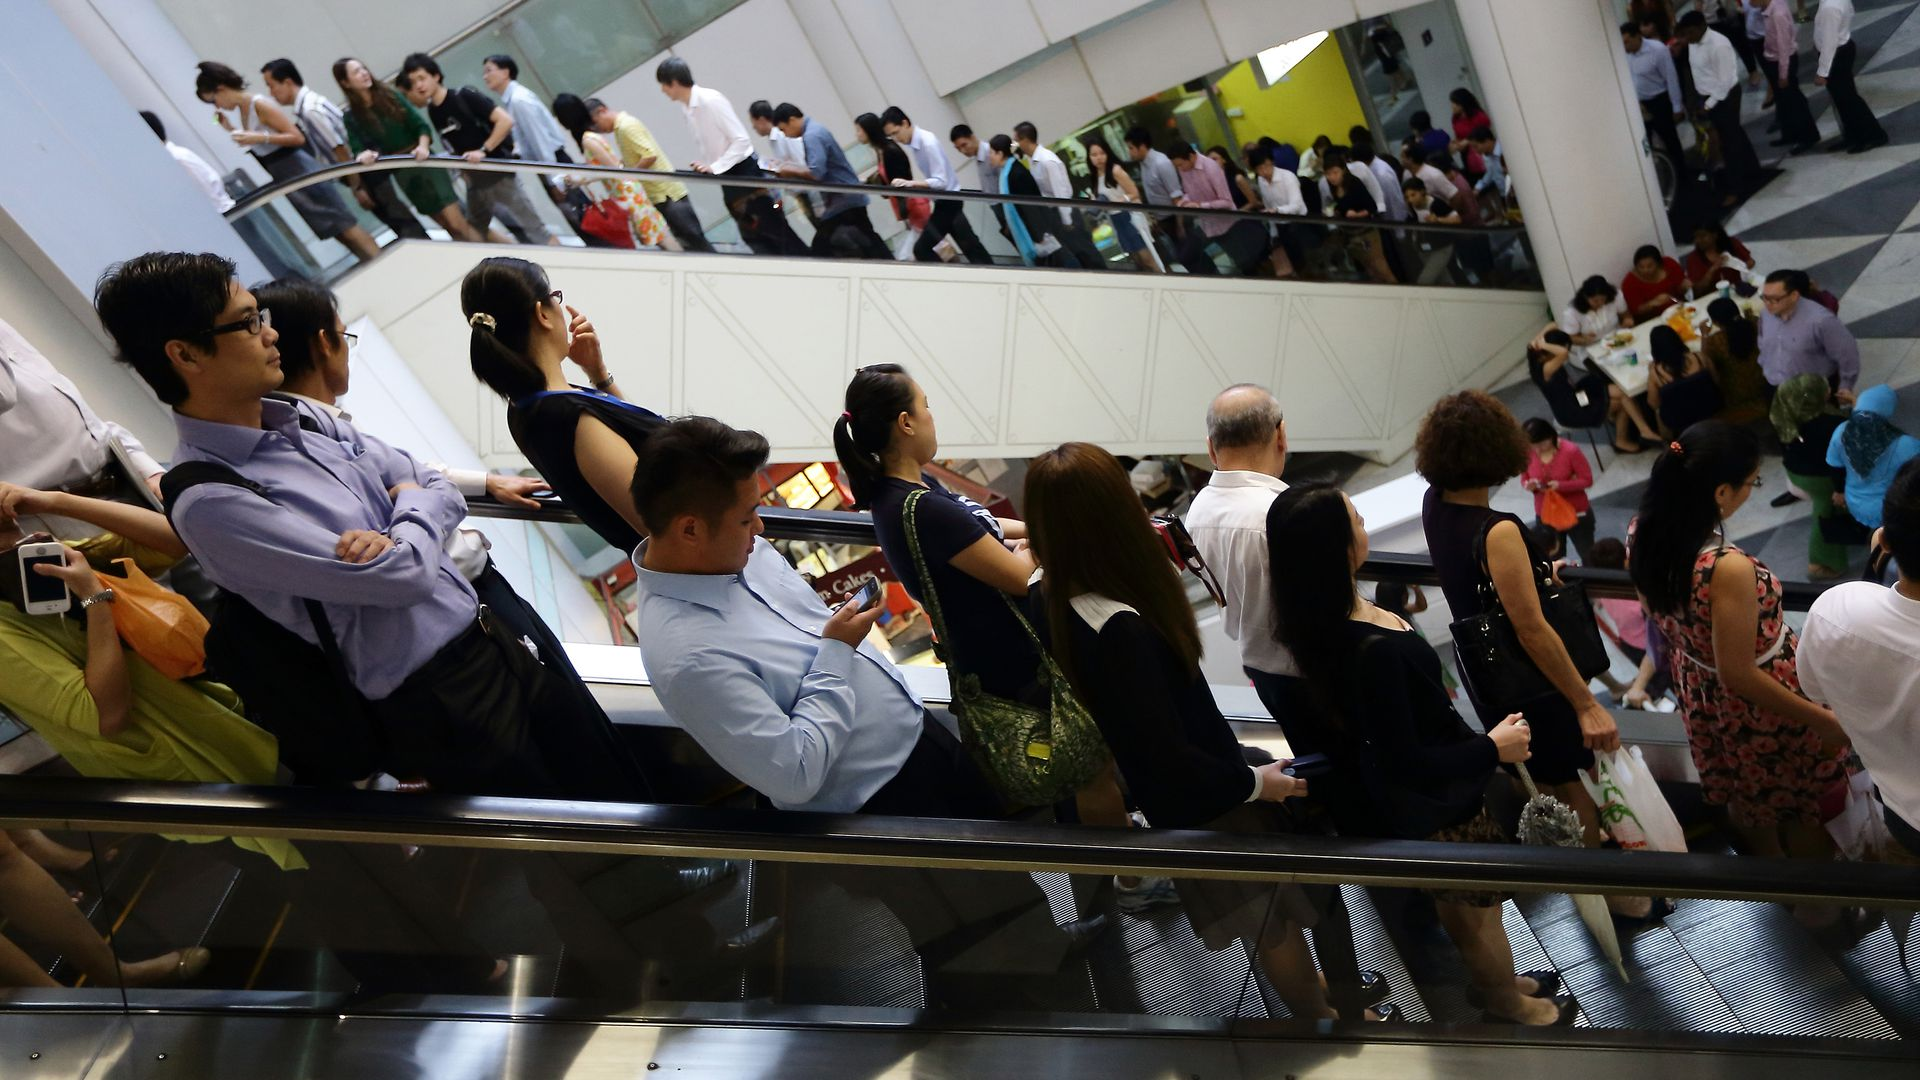 Commuters line the escalators at lunch hour at Raffles Place in Singapore